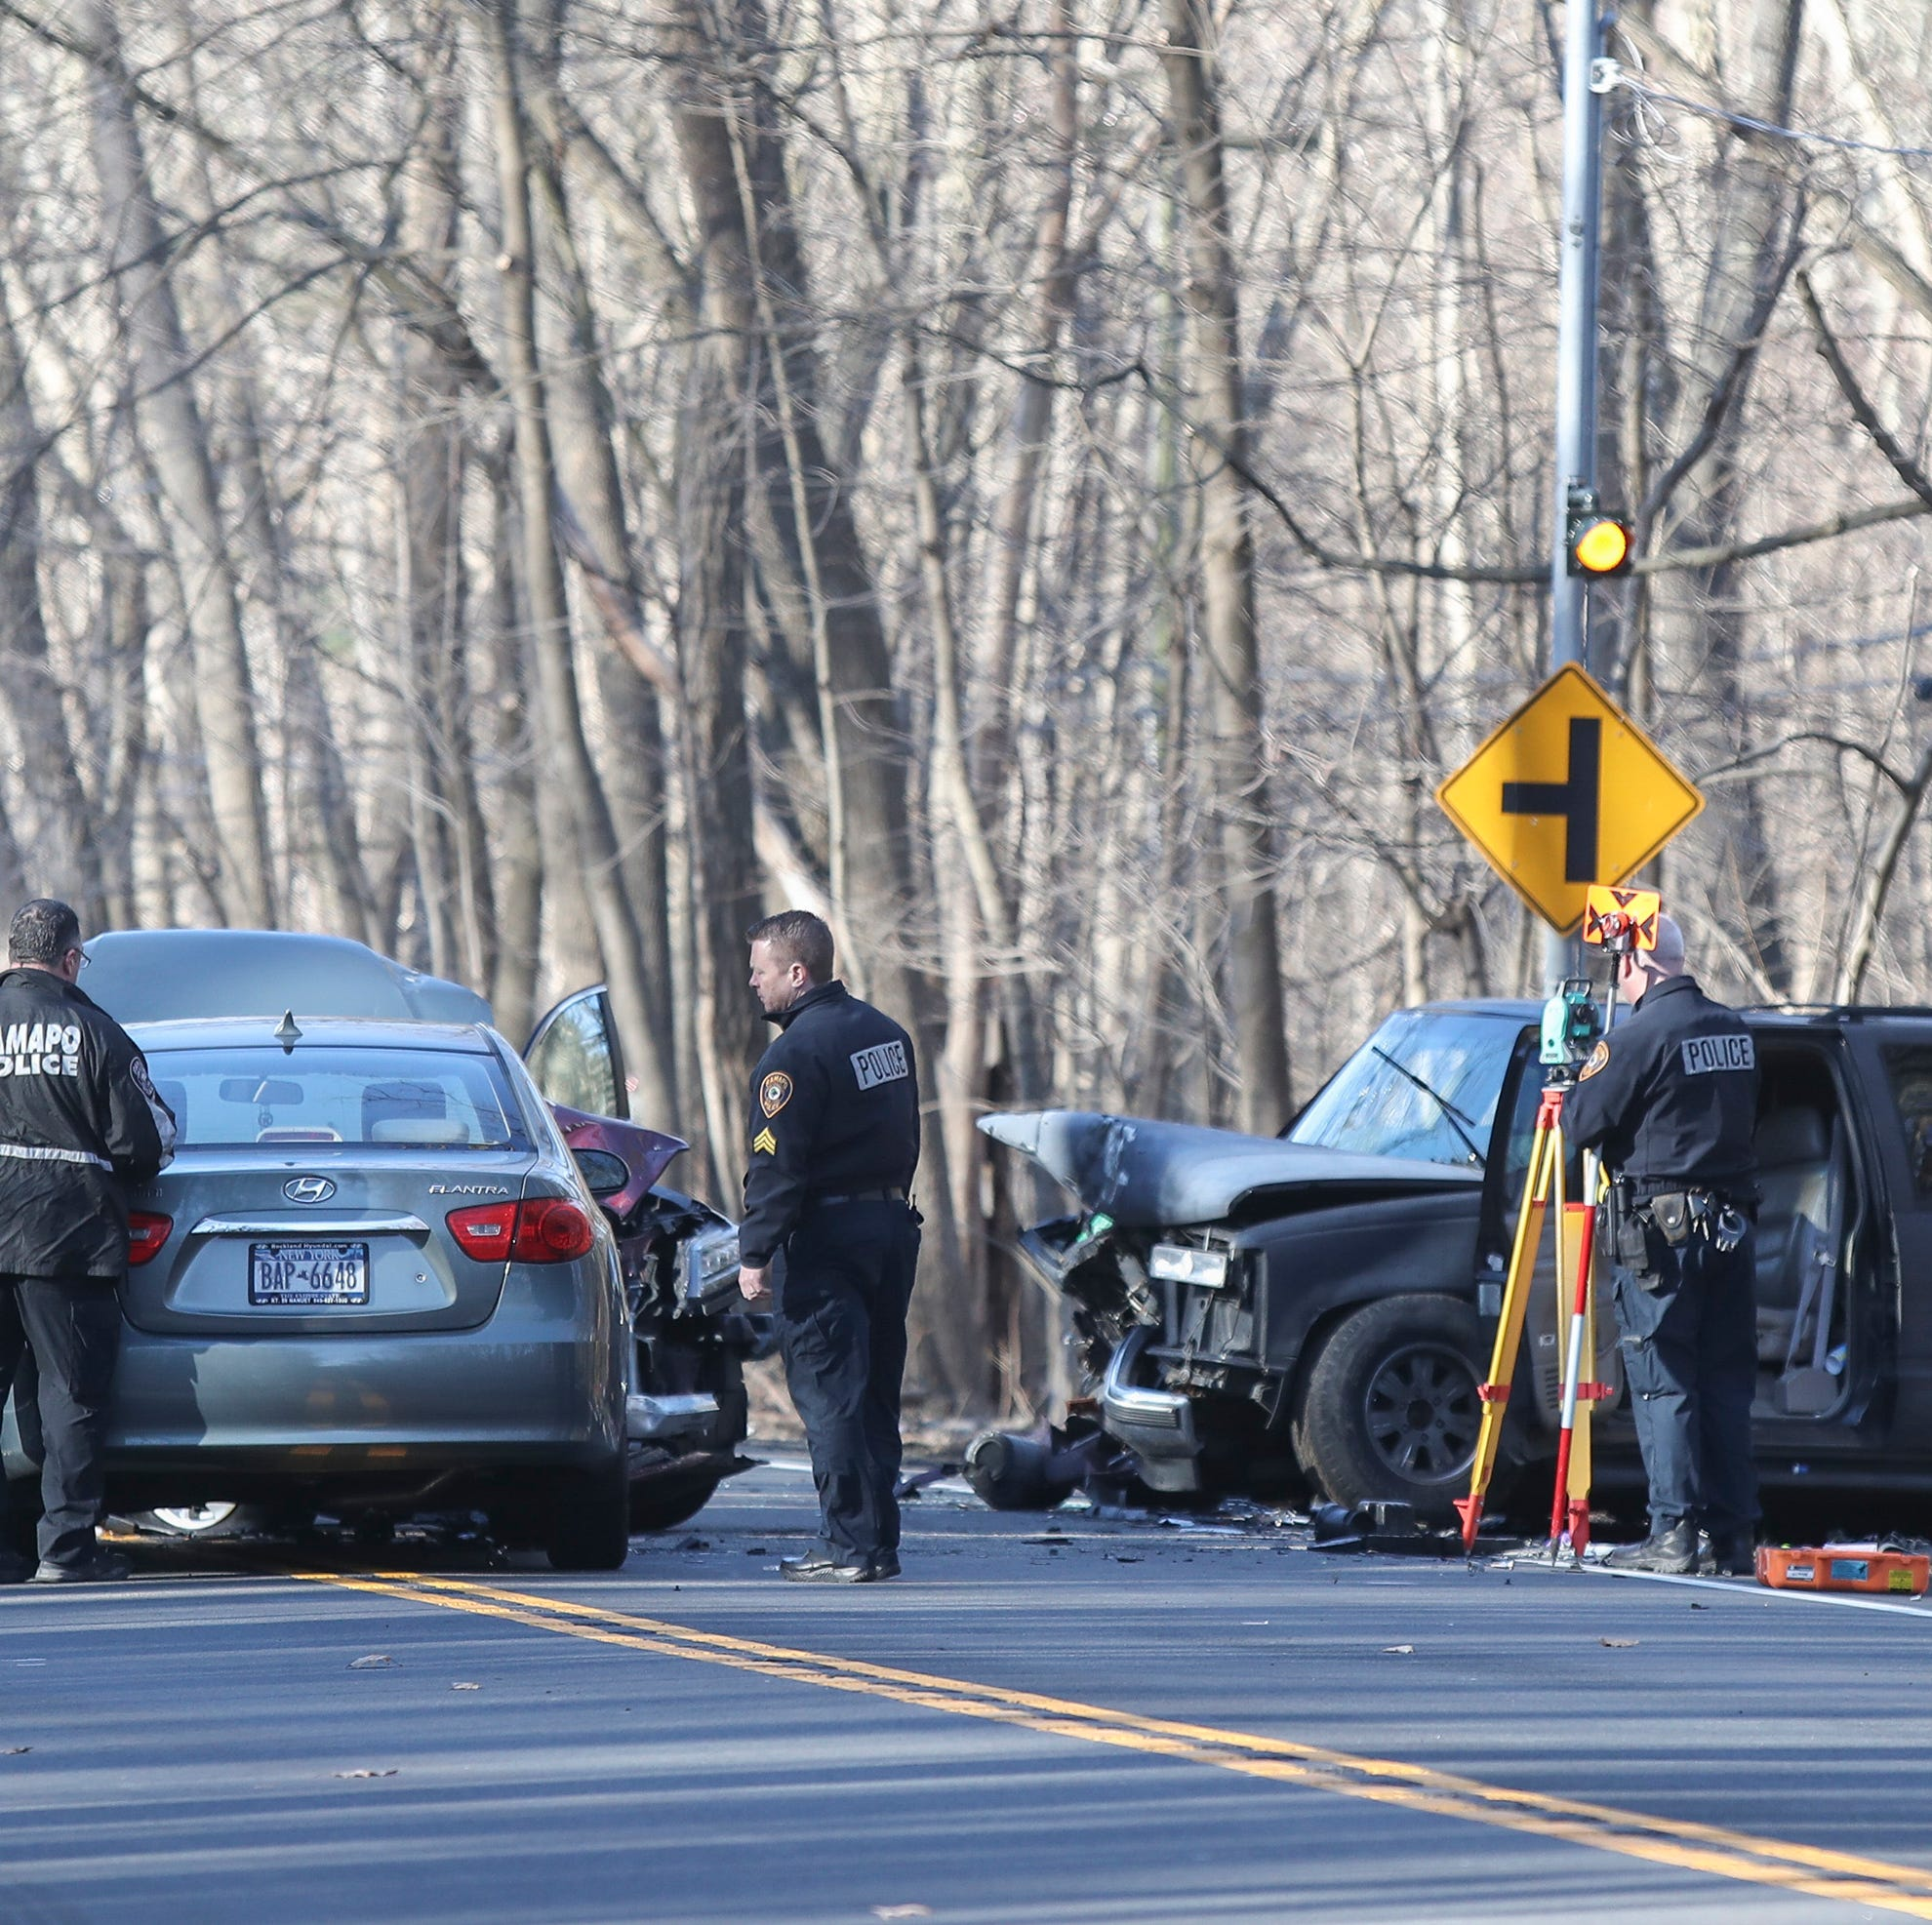 Pomona man dies in Route 202 three-car crash in Ramapo